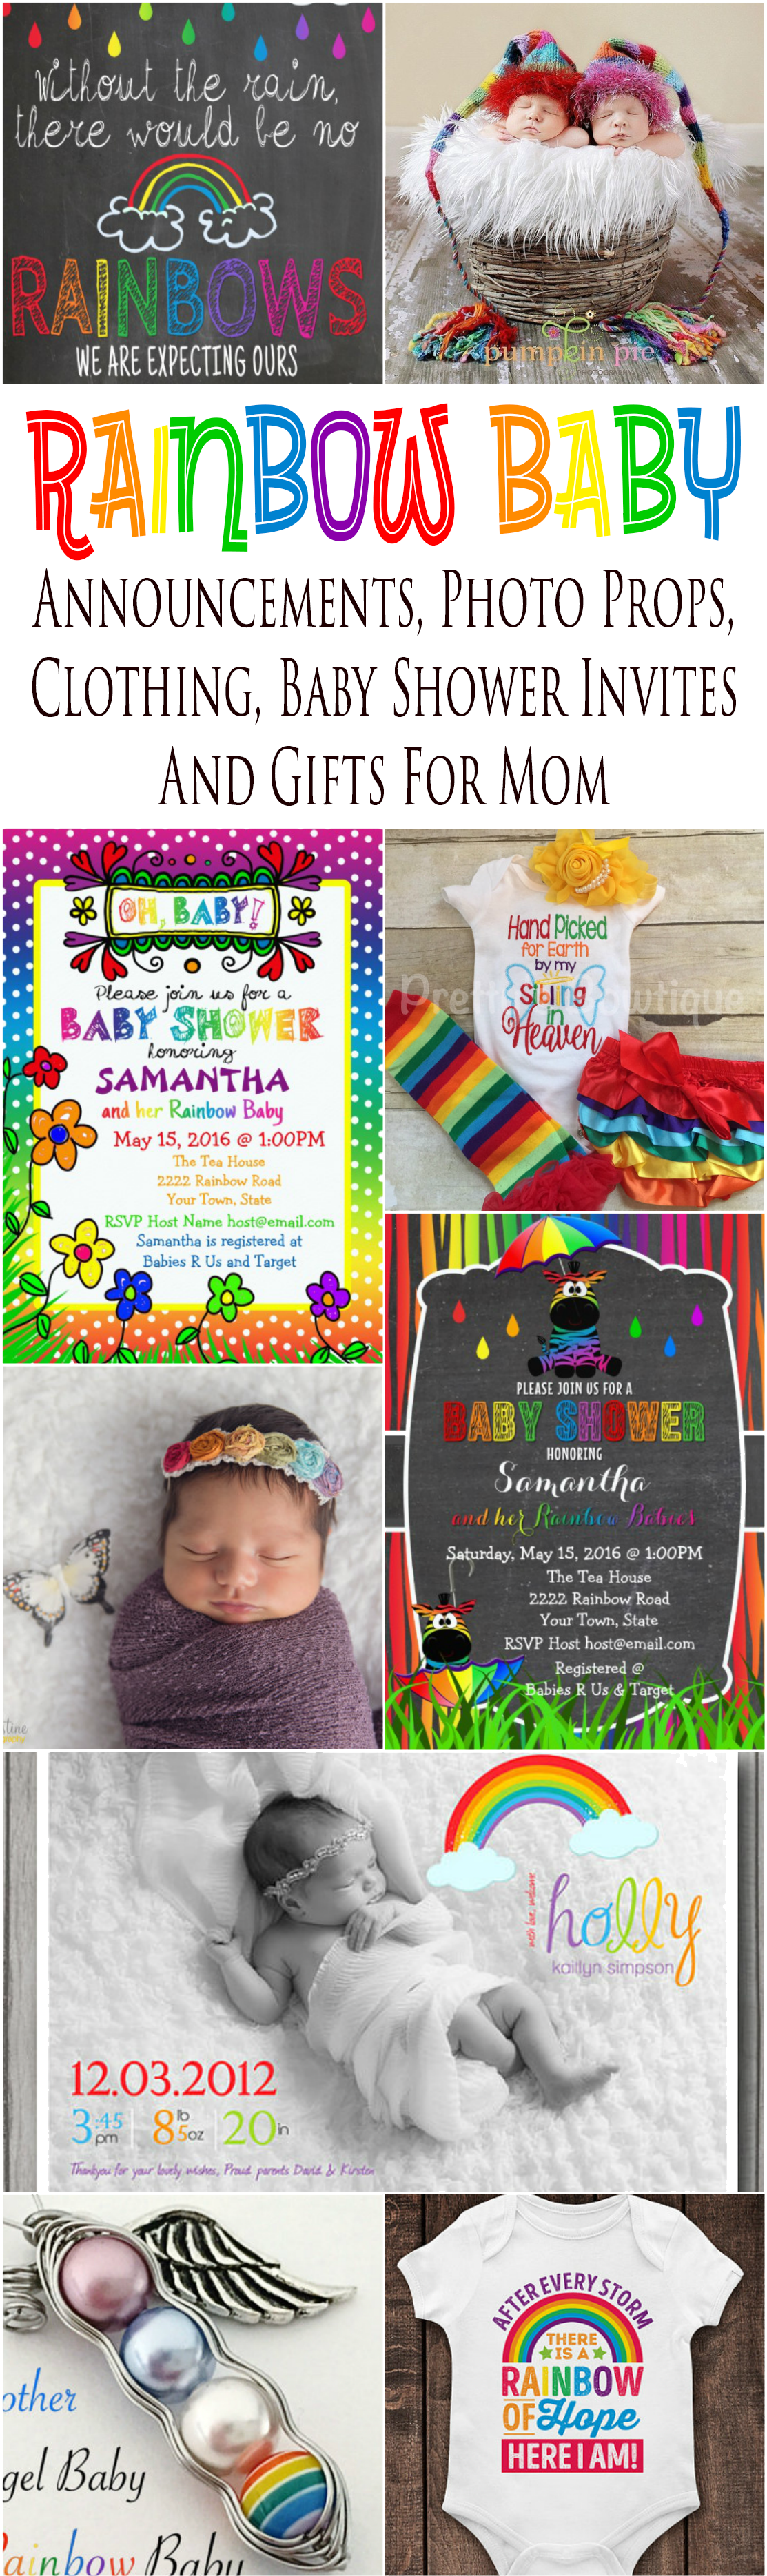 Rainbow baby announcement cards, pregnancy announcement signs, maternity and baby photo props, baby shower invitations, gift ideas for mom and infant clothing especially for celebrating a pregnancy after a loss.